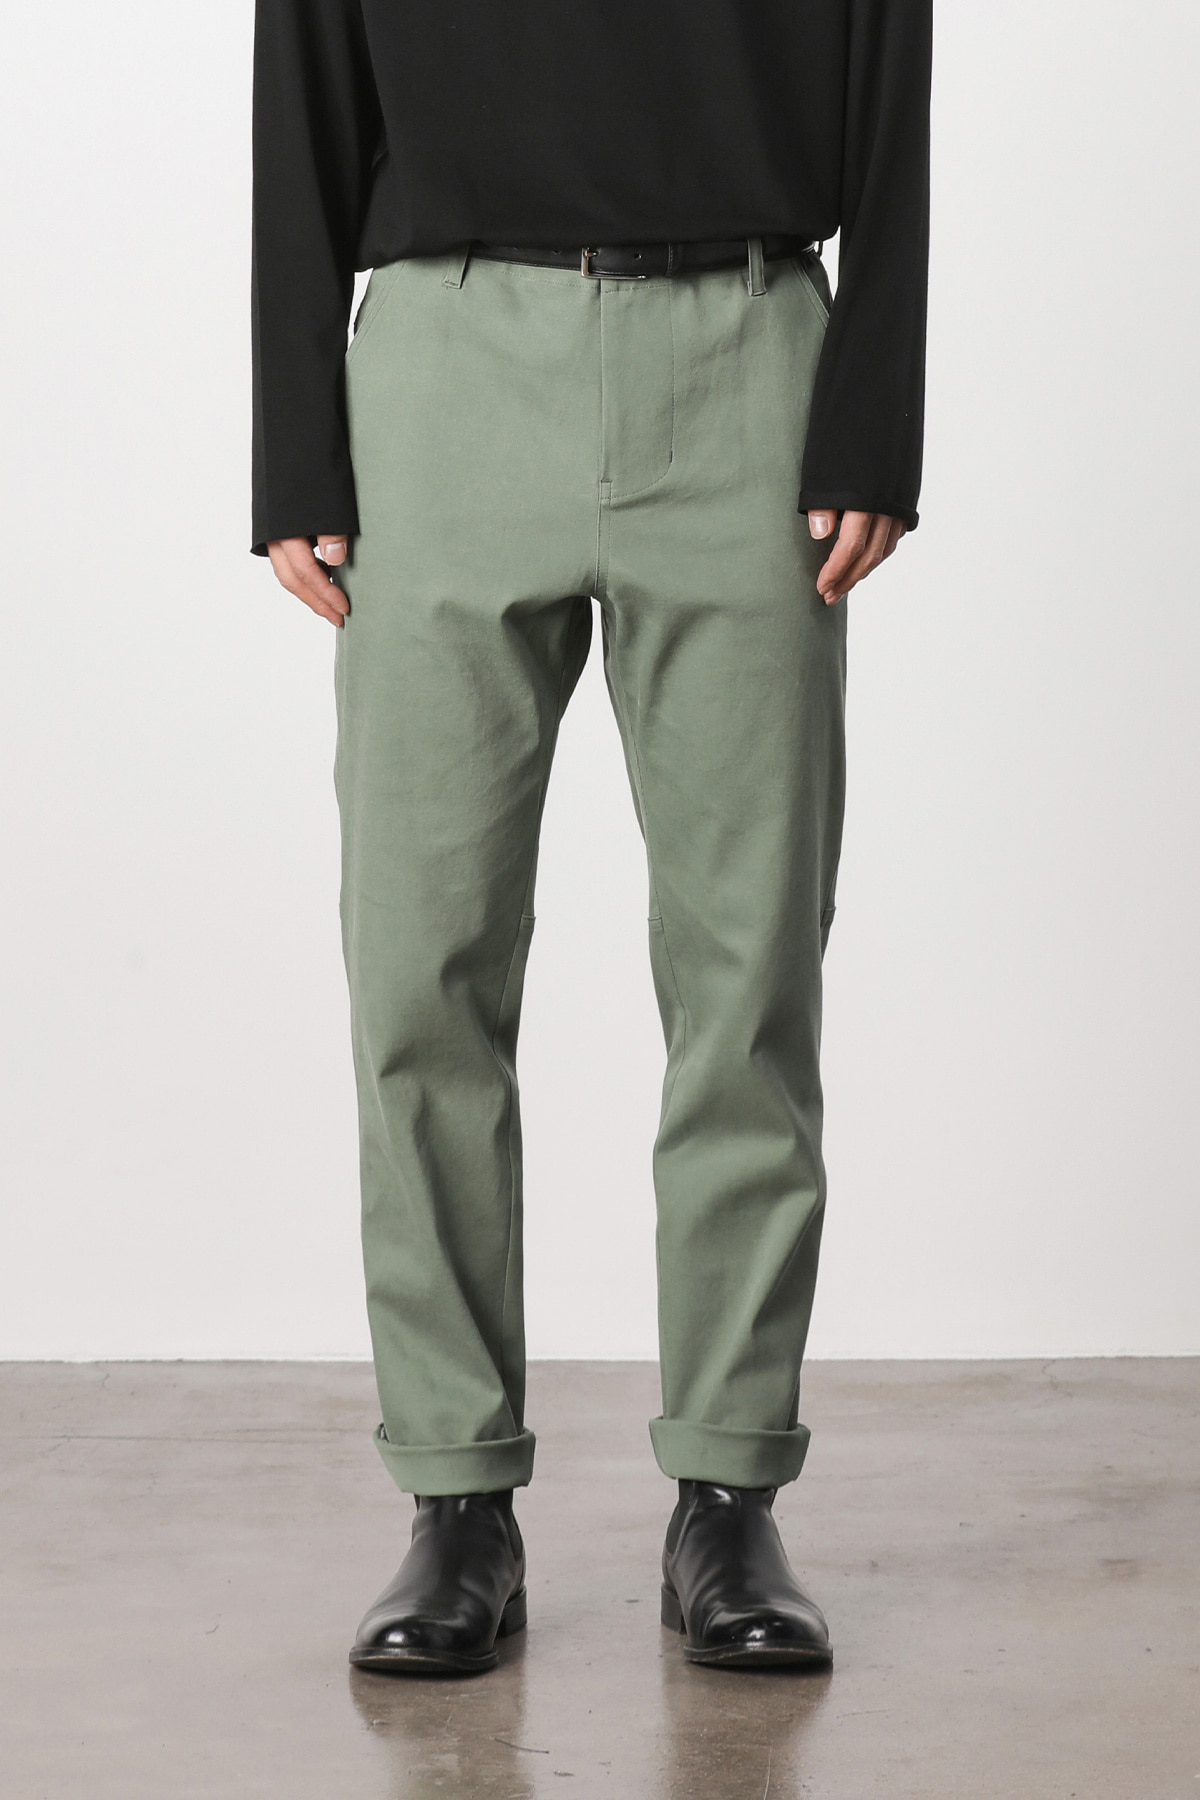 페이탈리즘 #jp03 Fatigue hound tapered pants (kakhi)